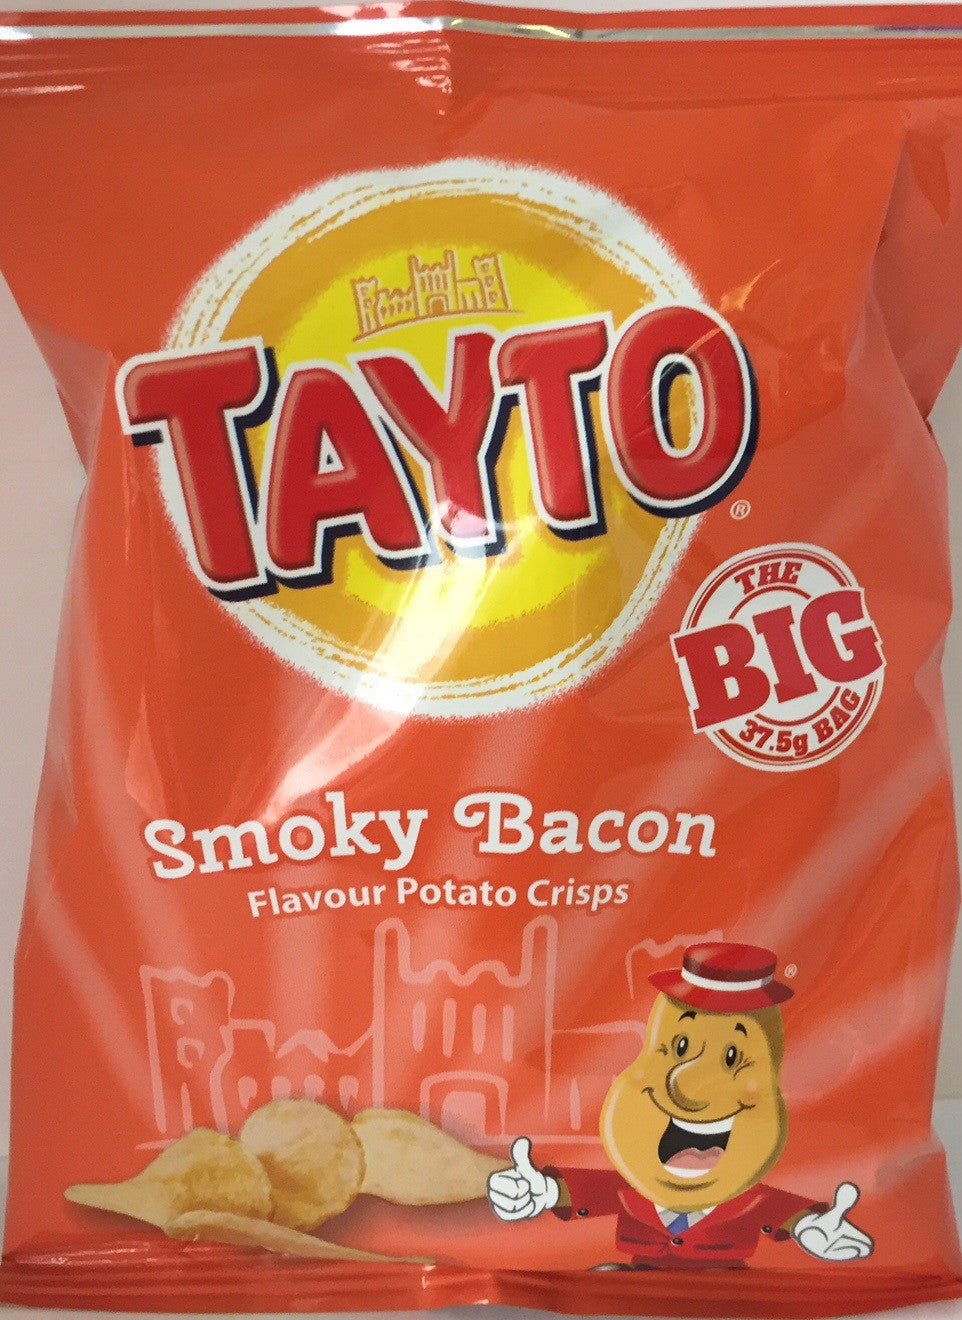 Tayto Smoky Bacon Crisps x 6